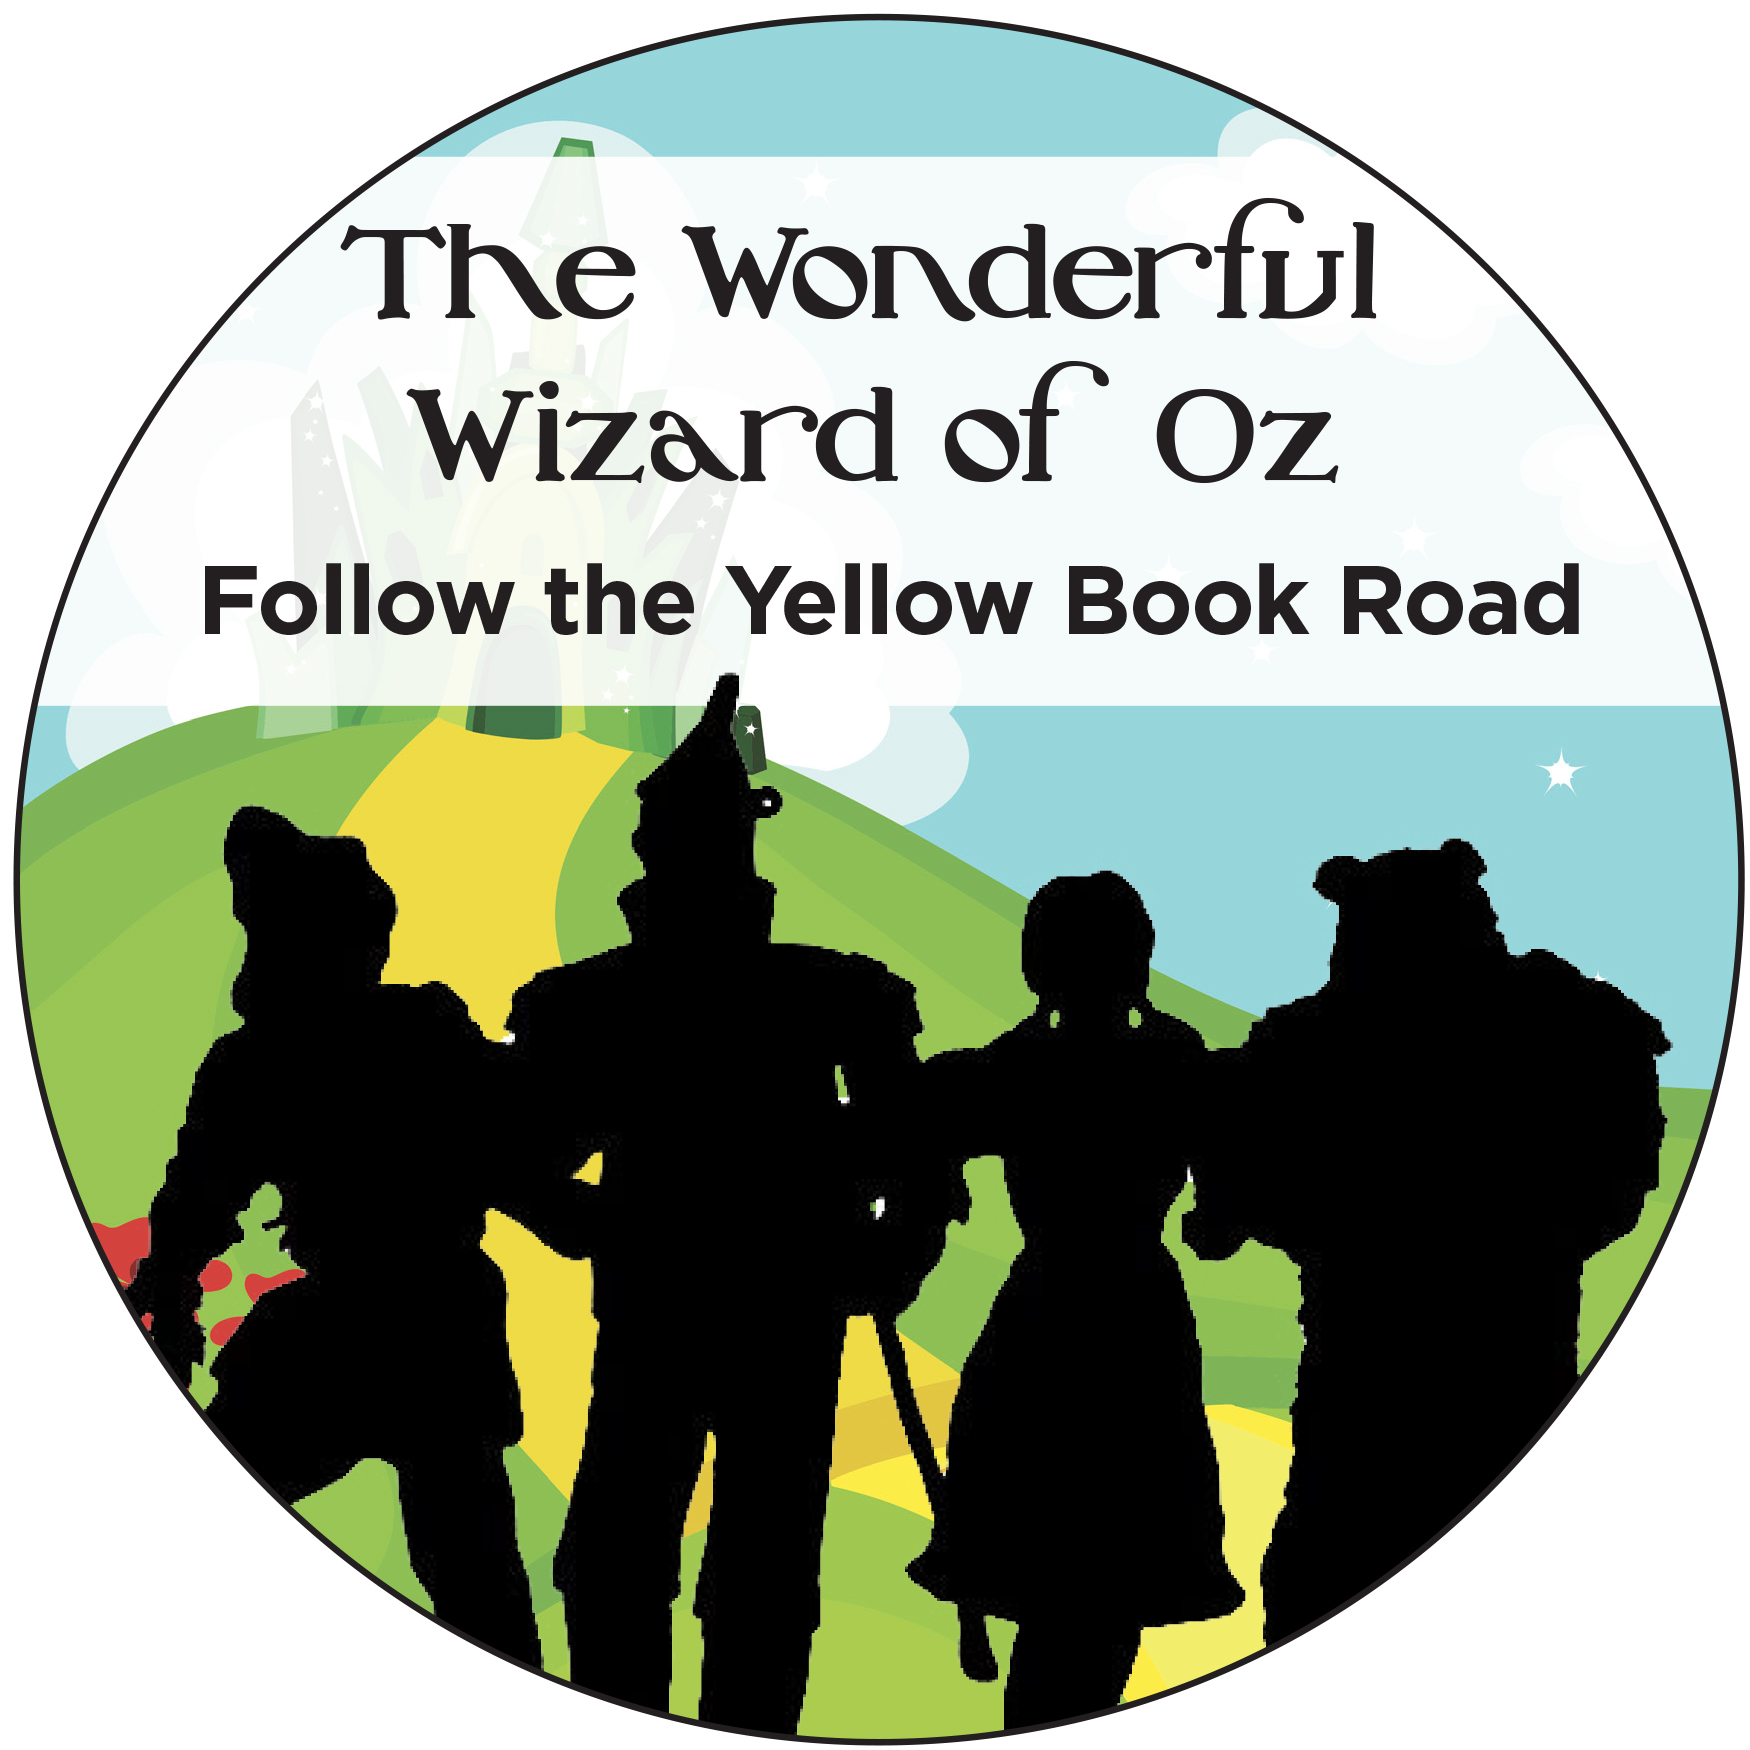 CANCELLED: The Great Read Kickoff:  The Wonderful Wizard of Oz Trivia Night (OSB)